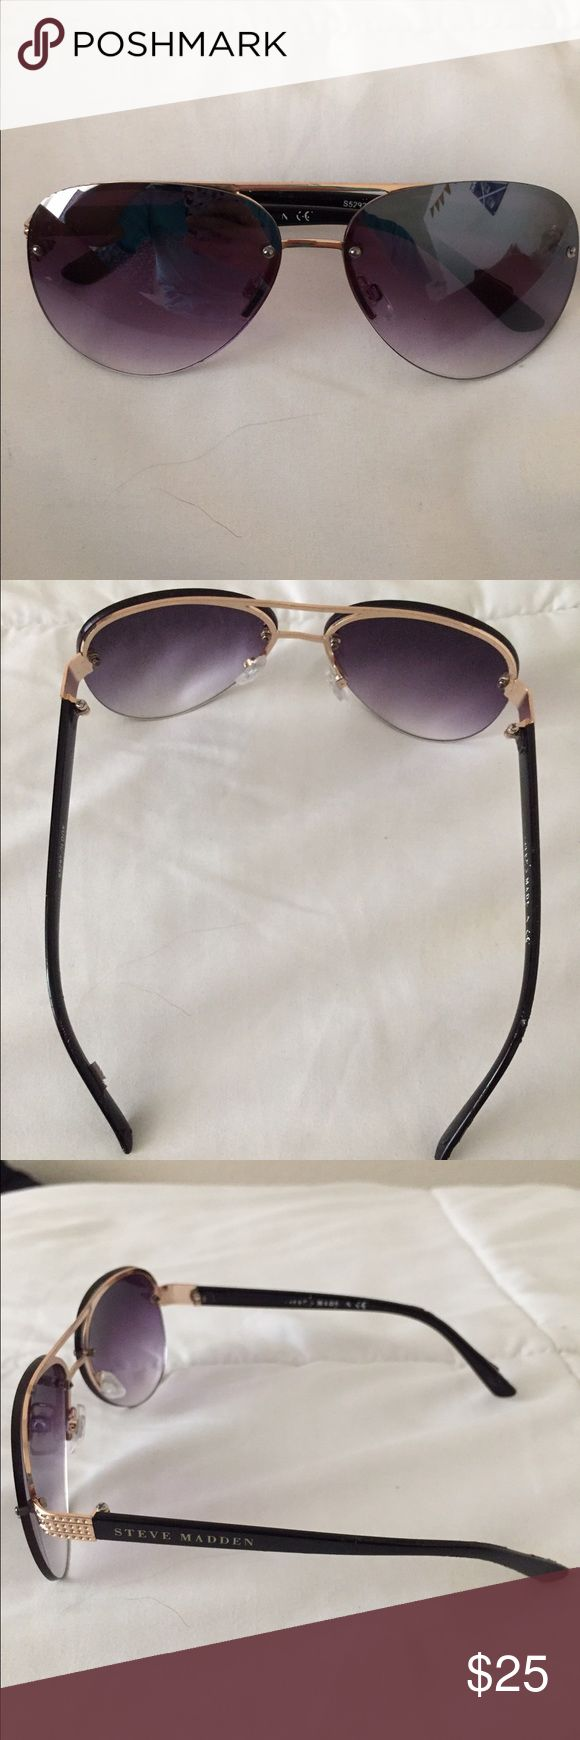 Steve Madden sunglasses Very cute sunglasses! Steve Madden Accessories Sunglasses